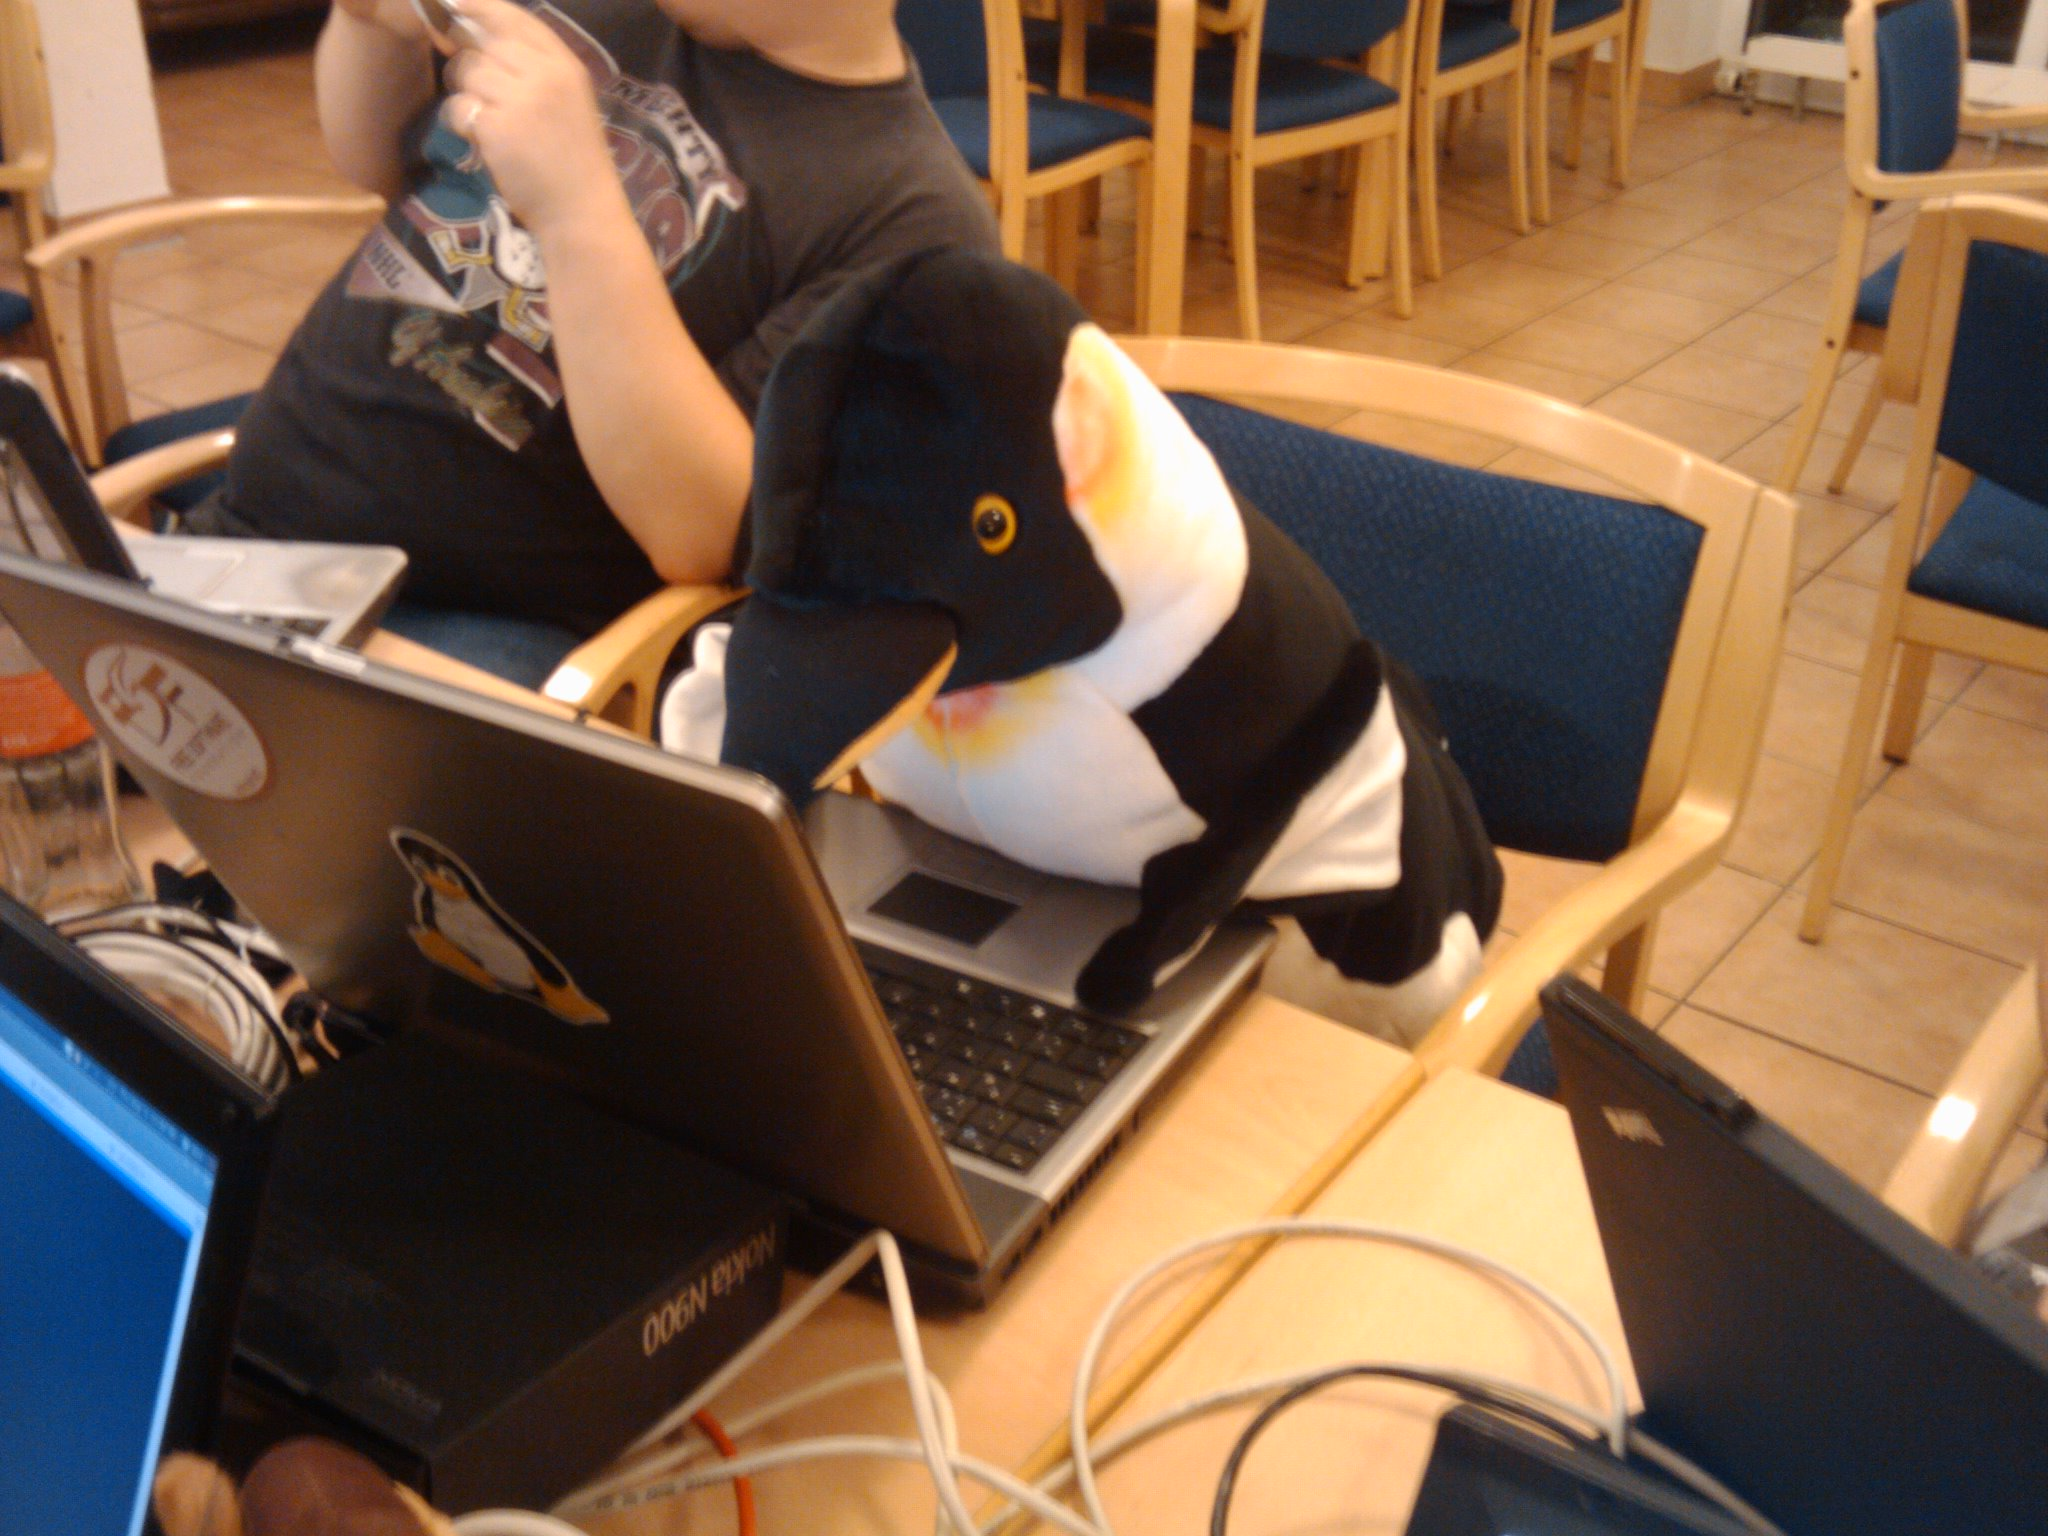 Tux at work II